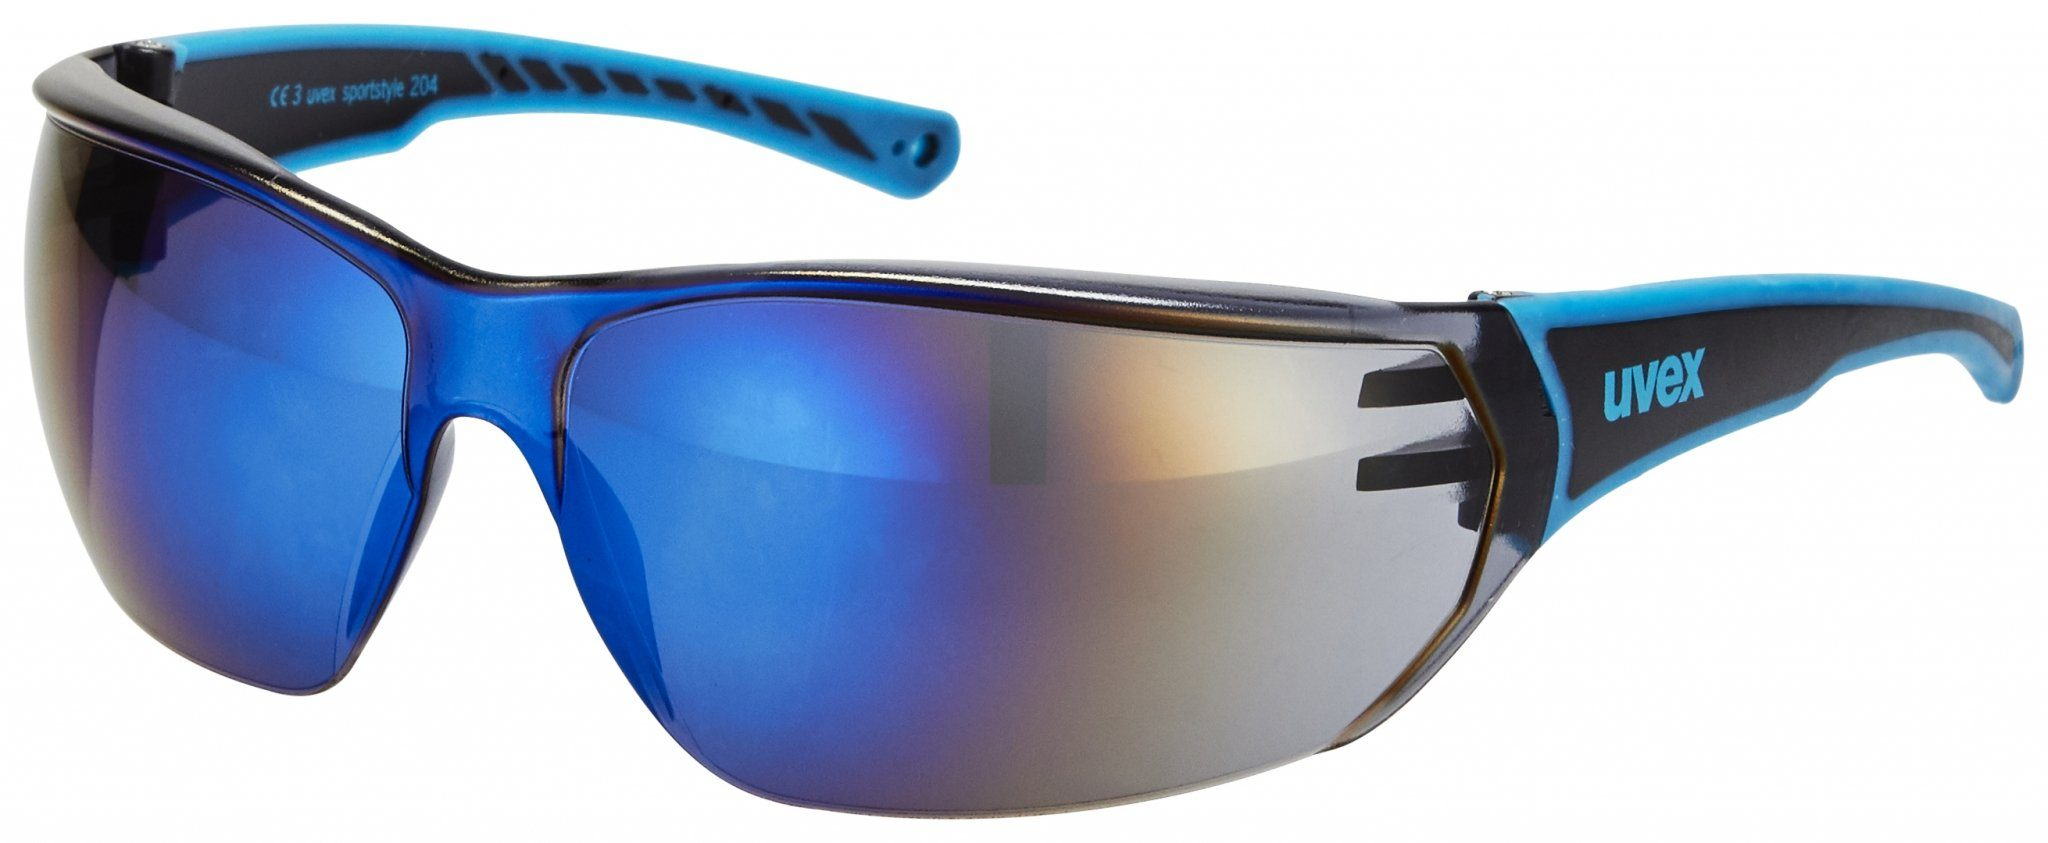 Uvex Sportbrille »sportstyle 204 Glasses«